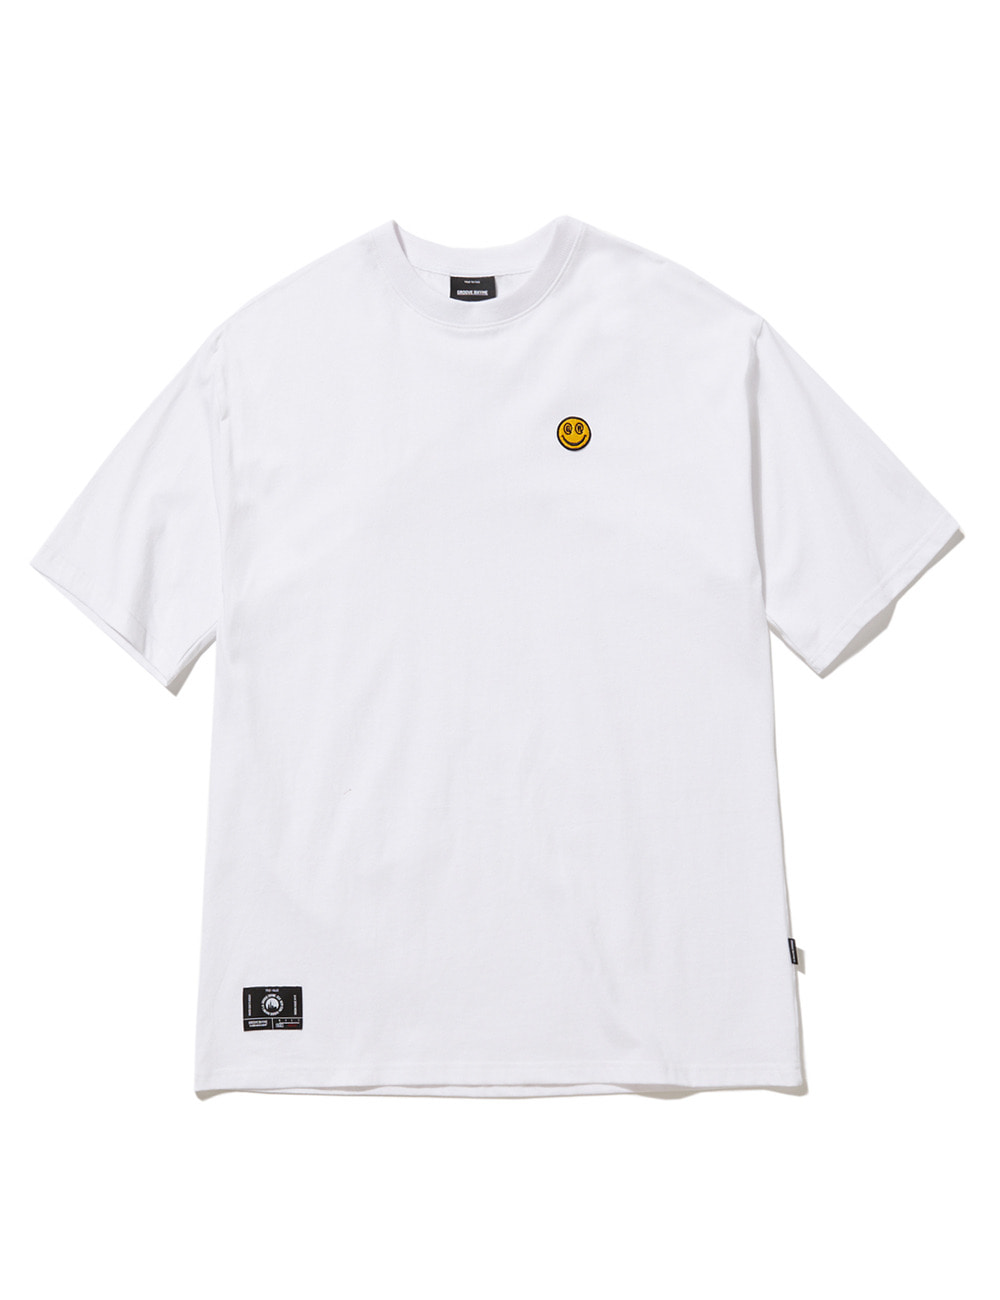 SMALL SMILE LOGO OVER FIT T-SHIRTS (WHITE) [GTS050H23WH]